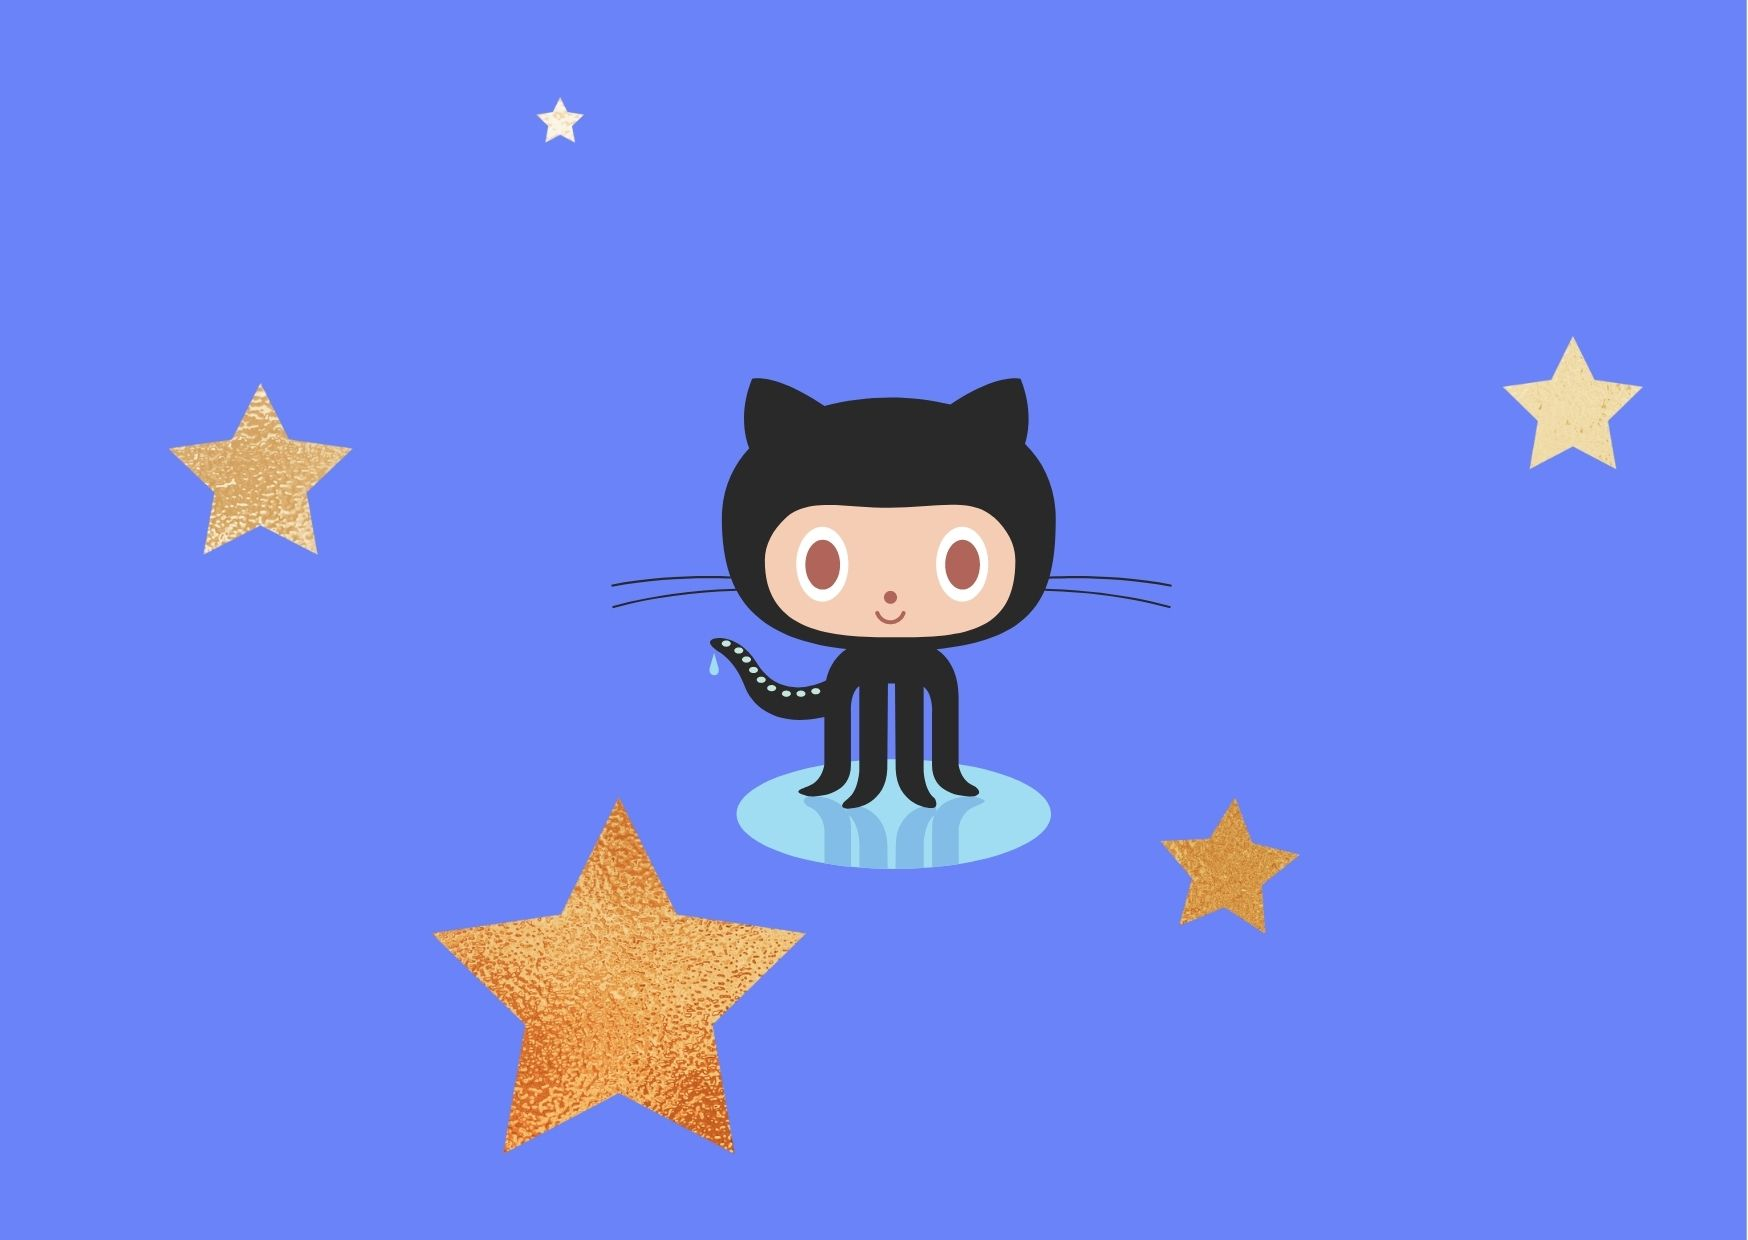 Appsmith Project Now Has 1000 GitHub Stars